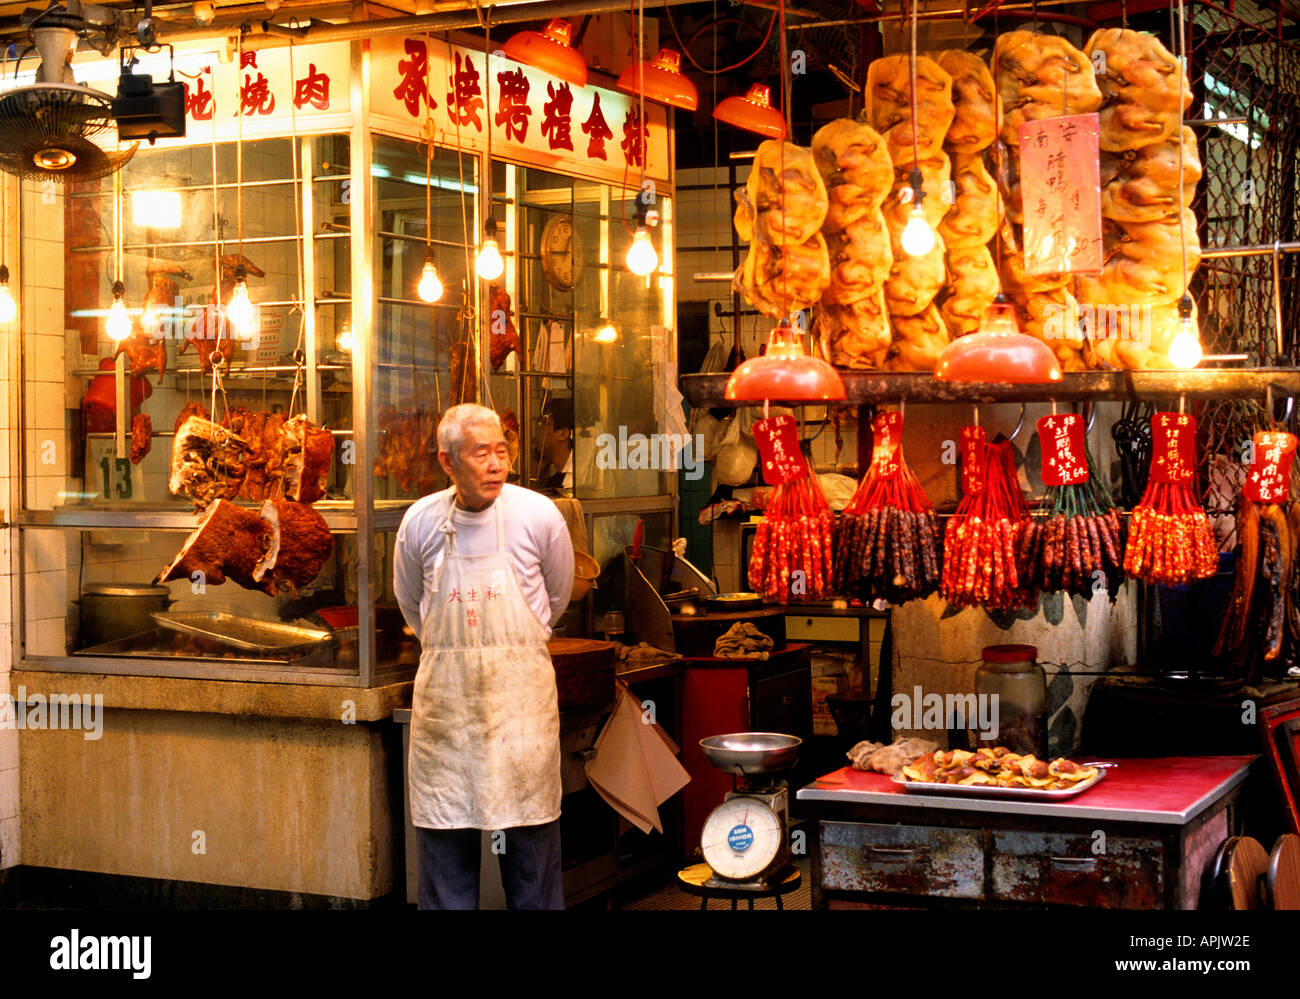 china chinese hong kong restaurant peking duck chicken stock photo 5161261 alamy. Black Bedroom Furniture Sets. Home Design Ideas